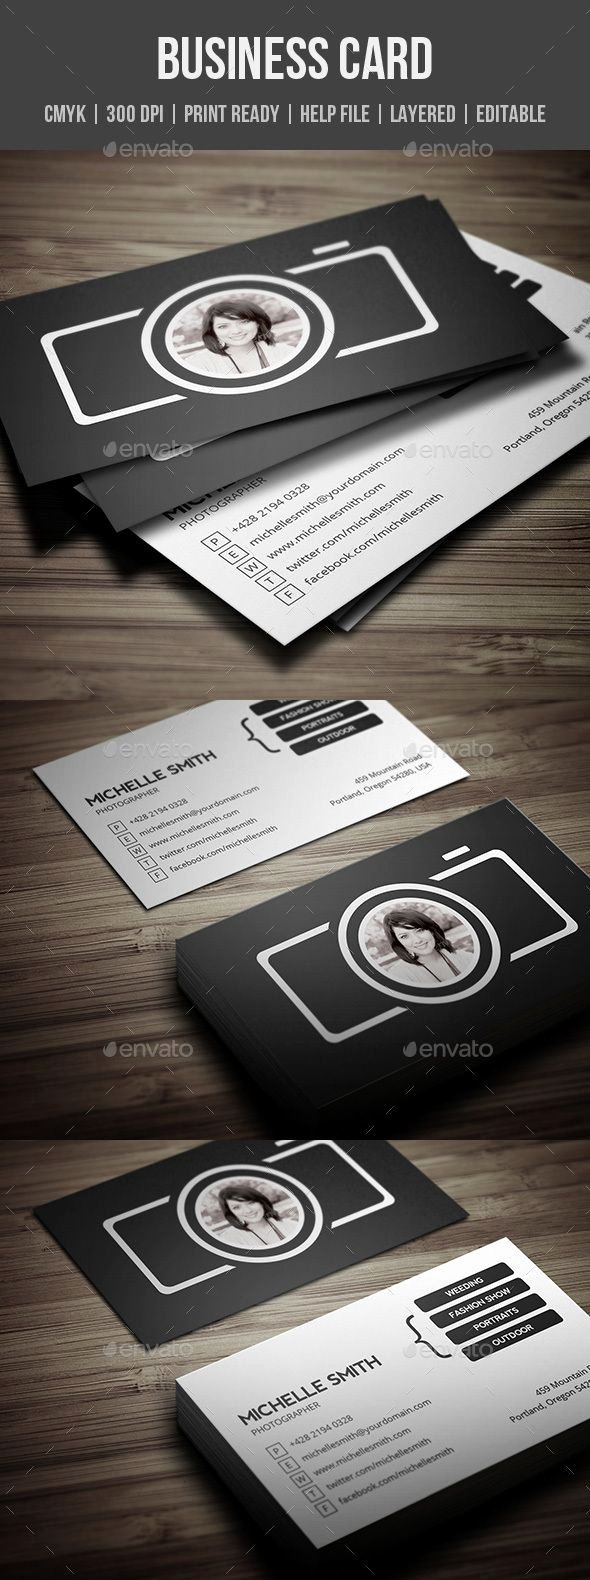 Photography Business Card Template Lovely Best 25 Grapher Business Cards Ideas On Pinterest